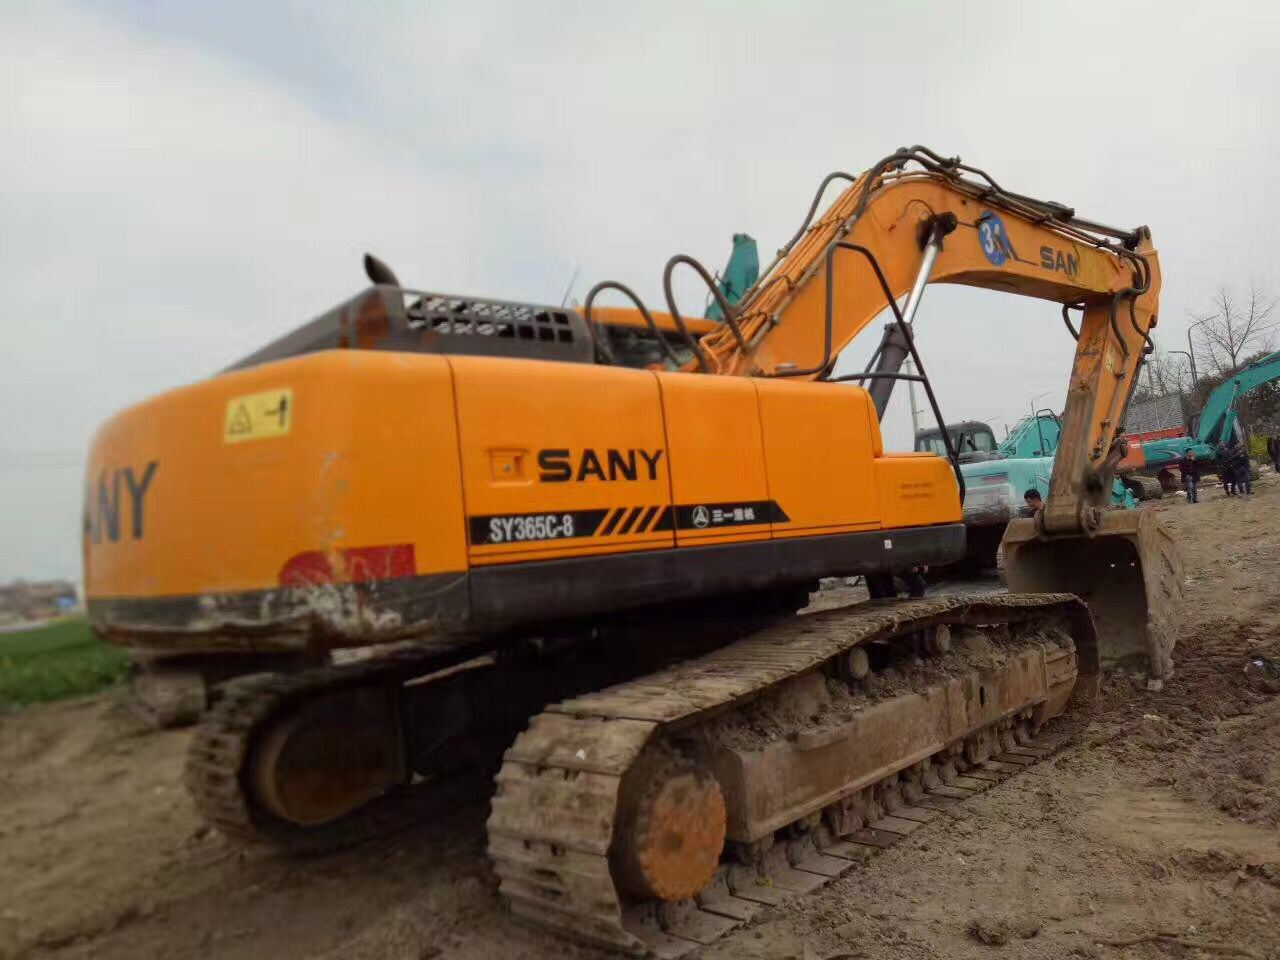 Cheap Used Excavator Sy365c-8 Crawler Excavator